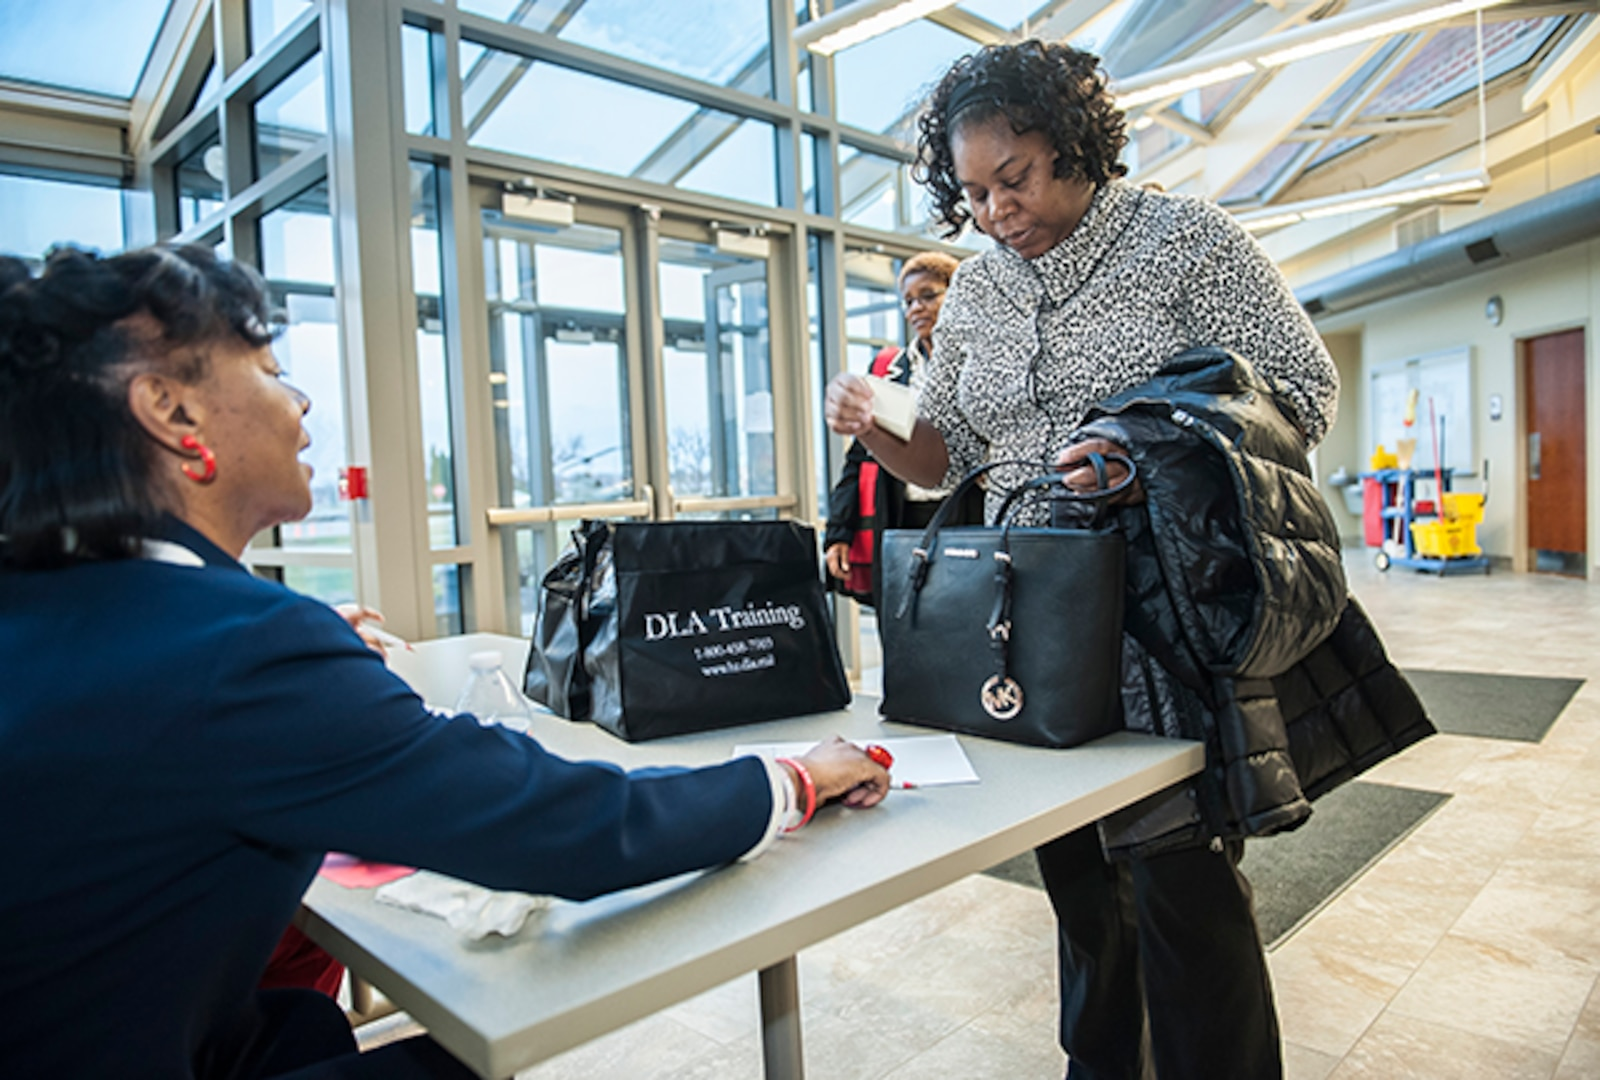 One of more than 120 attendees to the Defense Federal Communities Women's Leadership Summit registers prior to the opening kickoff March 23 in the Armed Forces Reserve Center (Building 2). The summit offered two workshops and a panel of four extraordinary women with diverse backgrounds in military, government and public service, sharing their career experiences to enable participants to enhance their leadership skills.